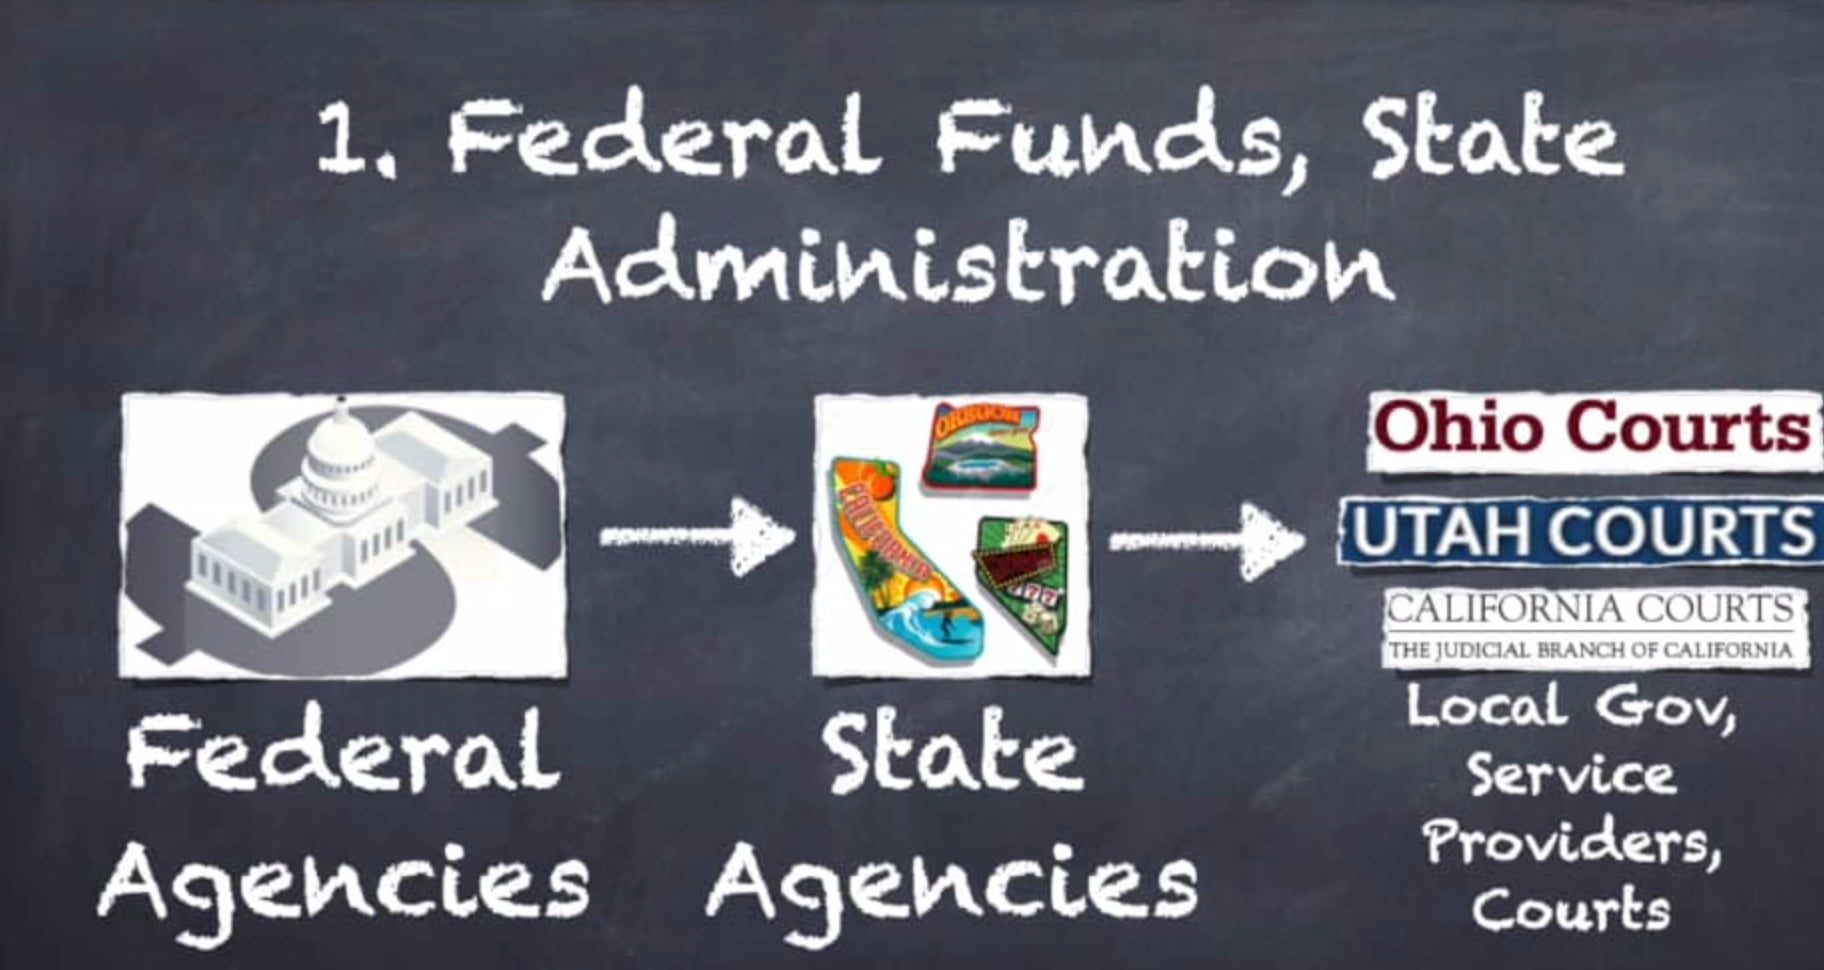 Grants Matrix. 1. Federal funds, State administrations. Federal Agencies, to state agencies, to local gov., service providers, and courts.